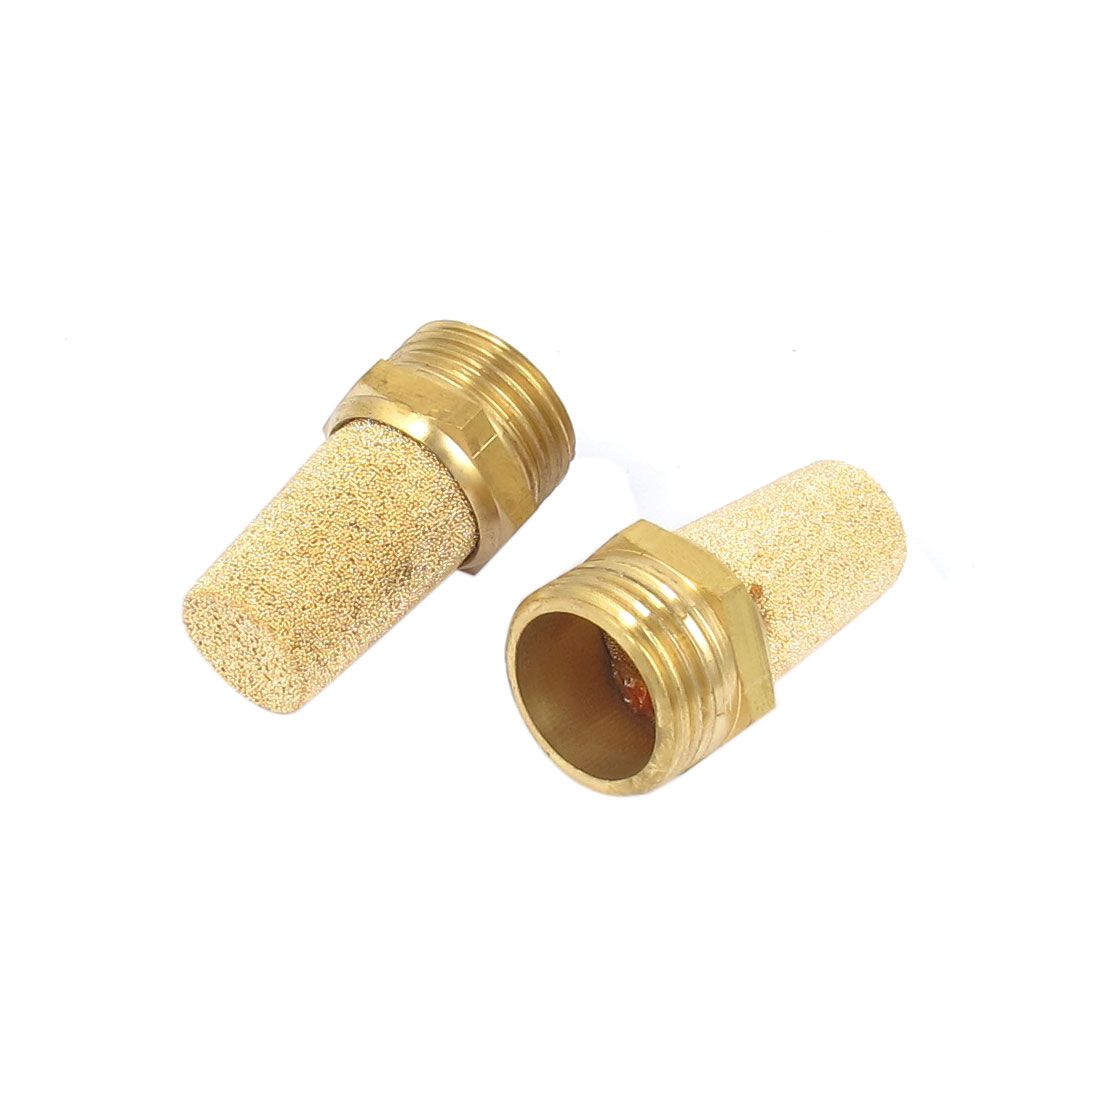 1/2BSP Male Thread Brass Pneumatic Exhaust Silencer Muffler 2pcs